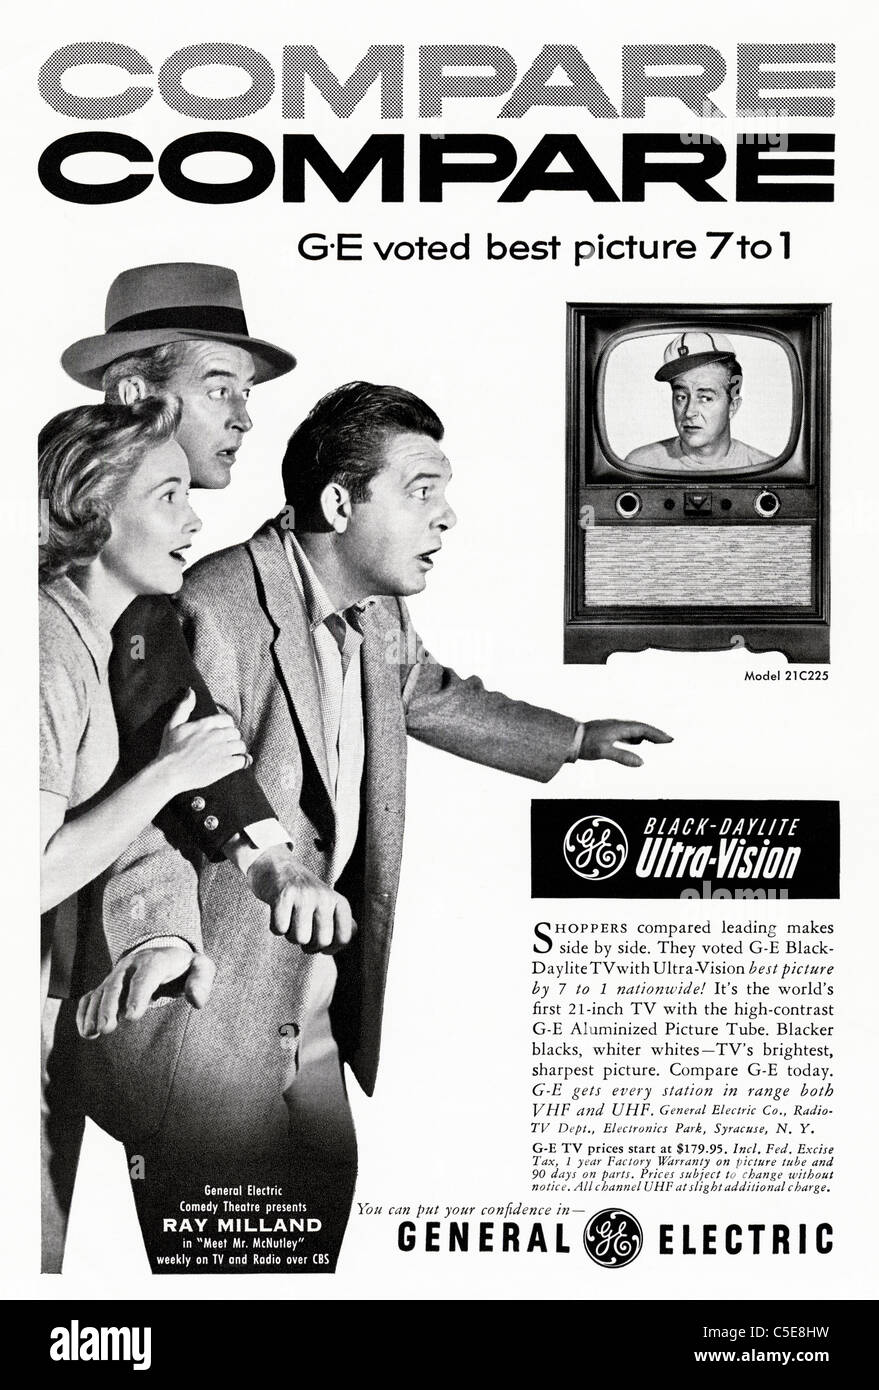 Original 1950s advert in American magazine advertising GENERAL ELECTRIC black & white television featuring celebrity Stock Photo